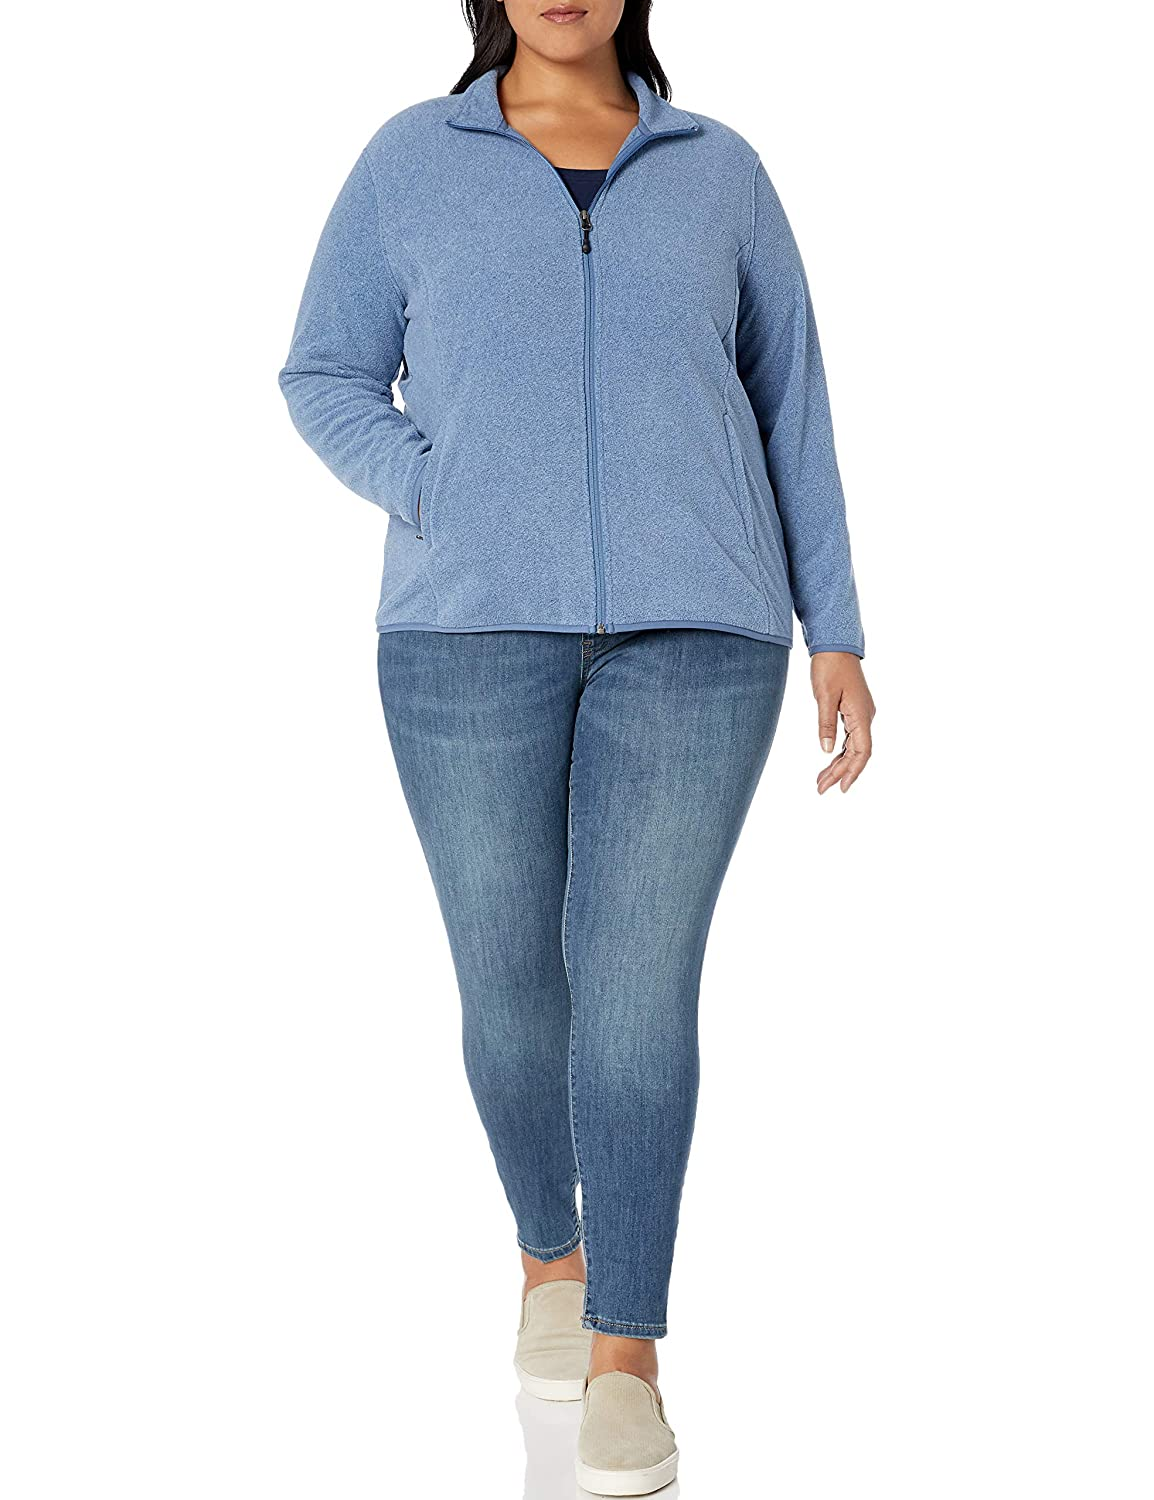 Amazon Essentials Plus Size Full-Zip Polar Fleece Jacket Femme Bleu Chiné